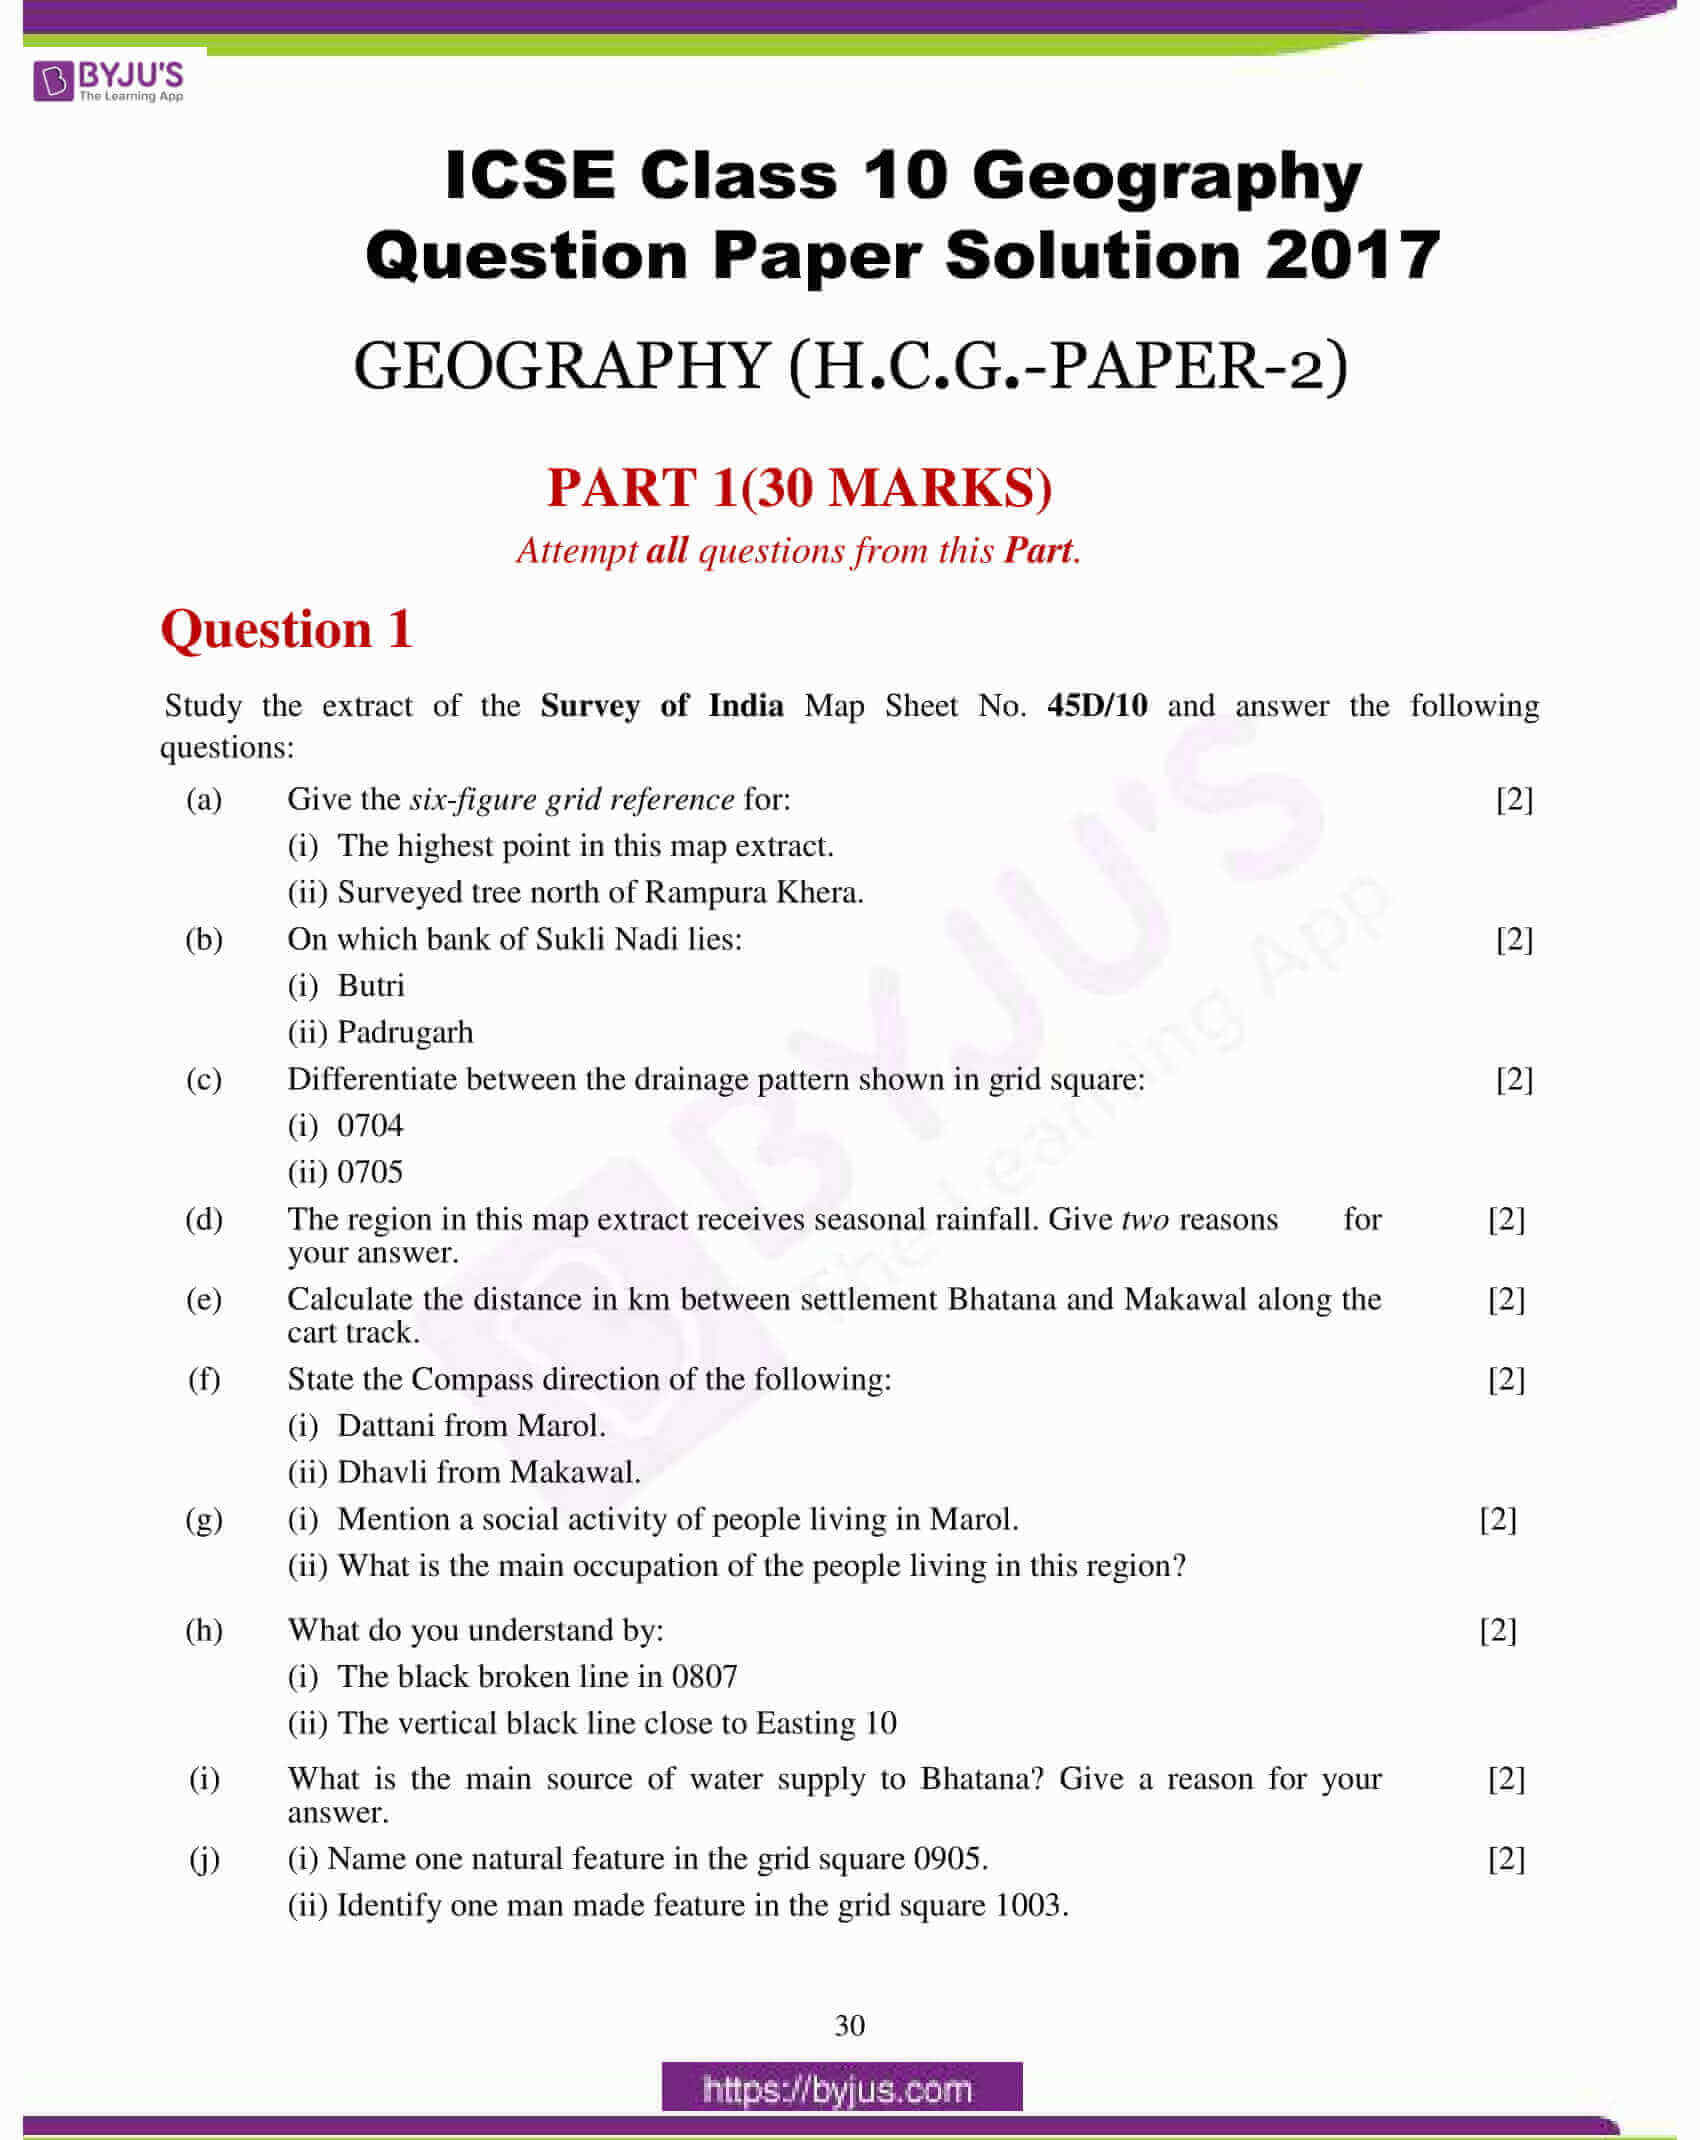 icse class 10 geography question paper solution 2017 01